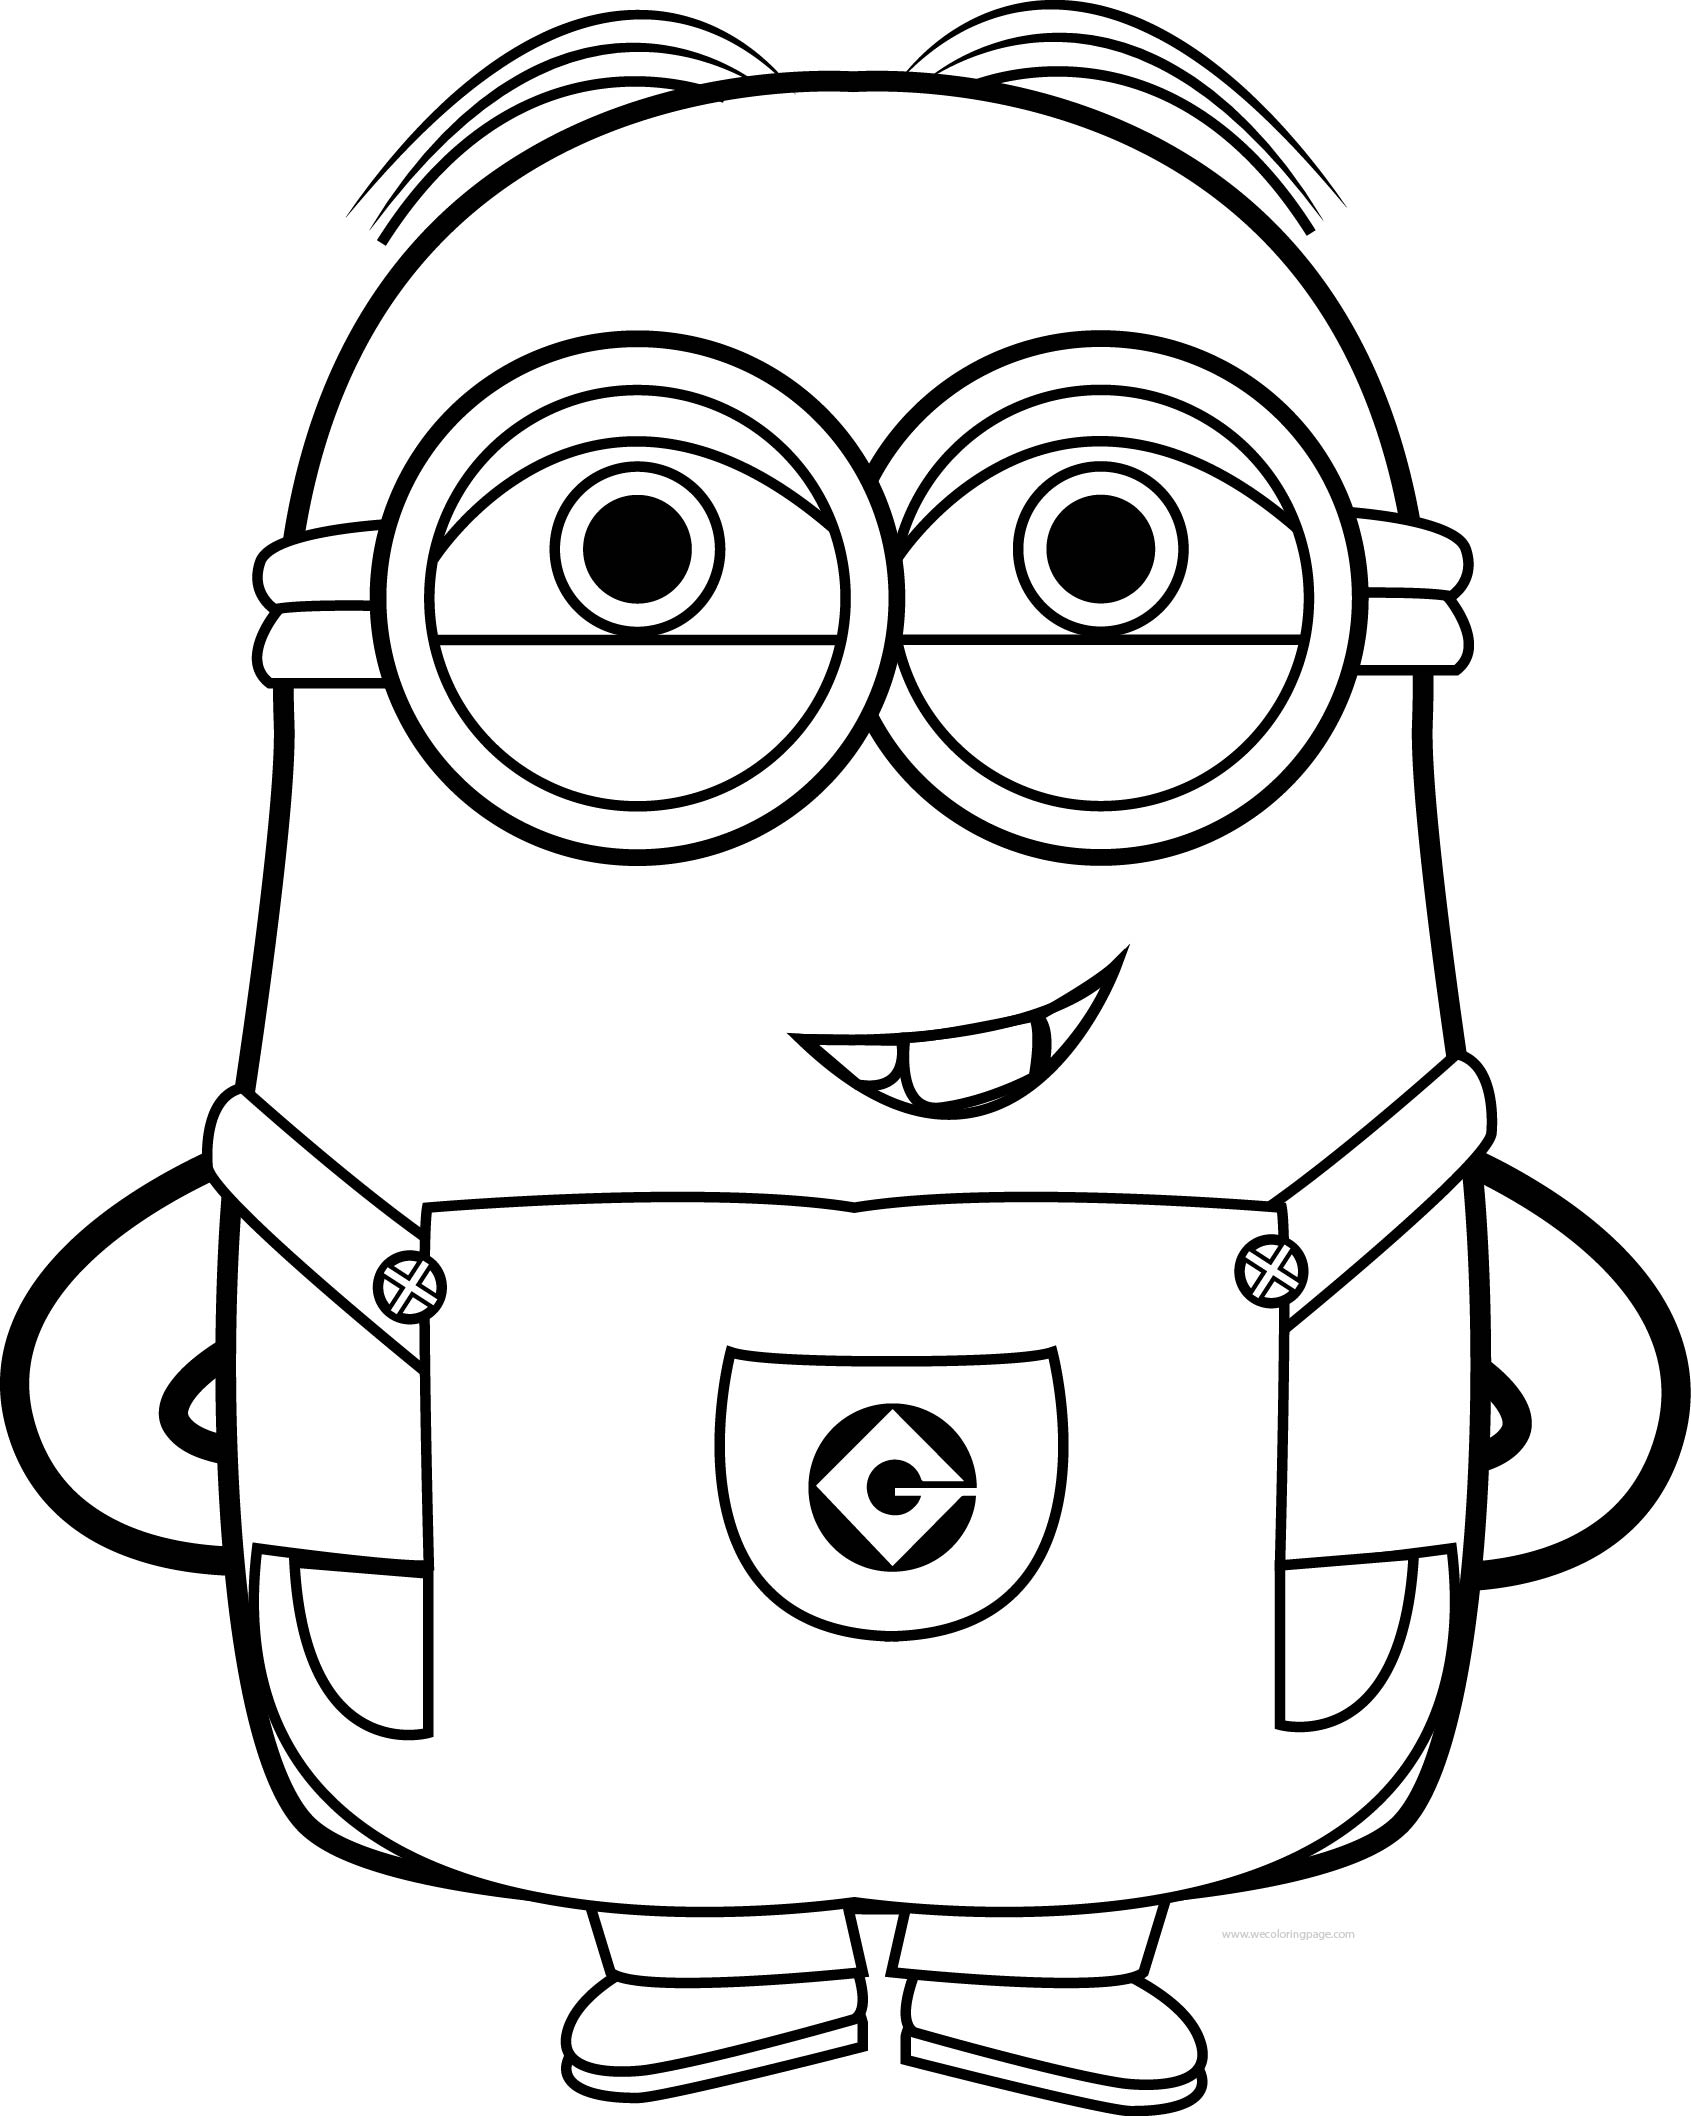 minions print minion coloring pages free download on clipartmag minions print 1 1